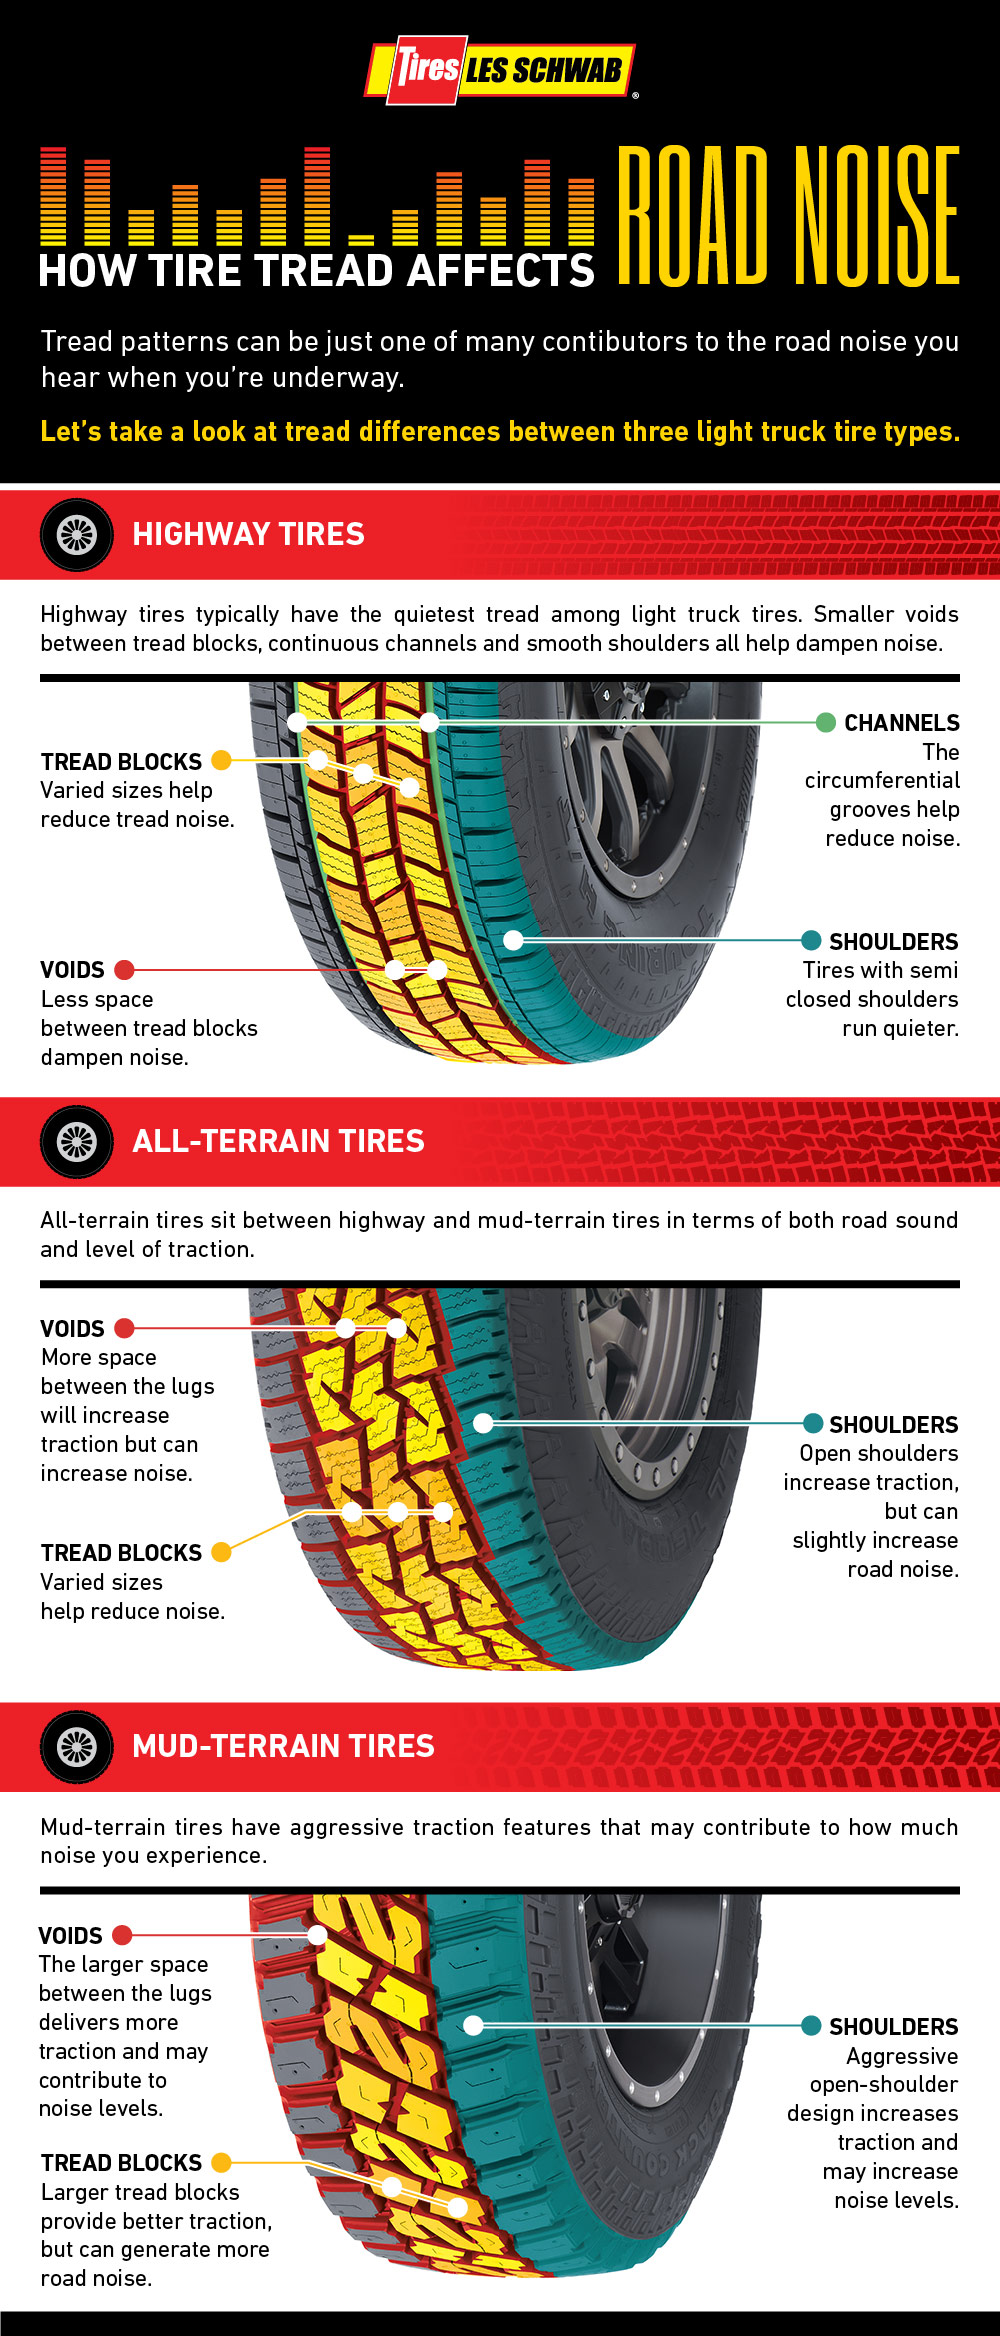 How Tire Tread Affects Road Noise